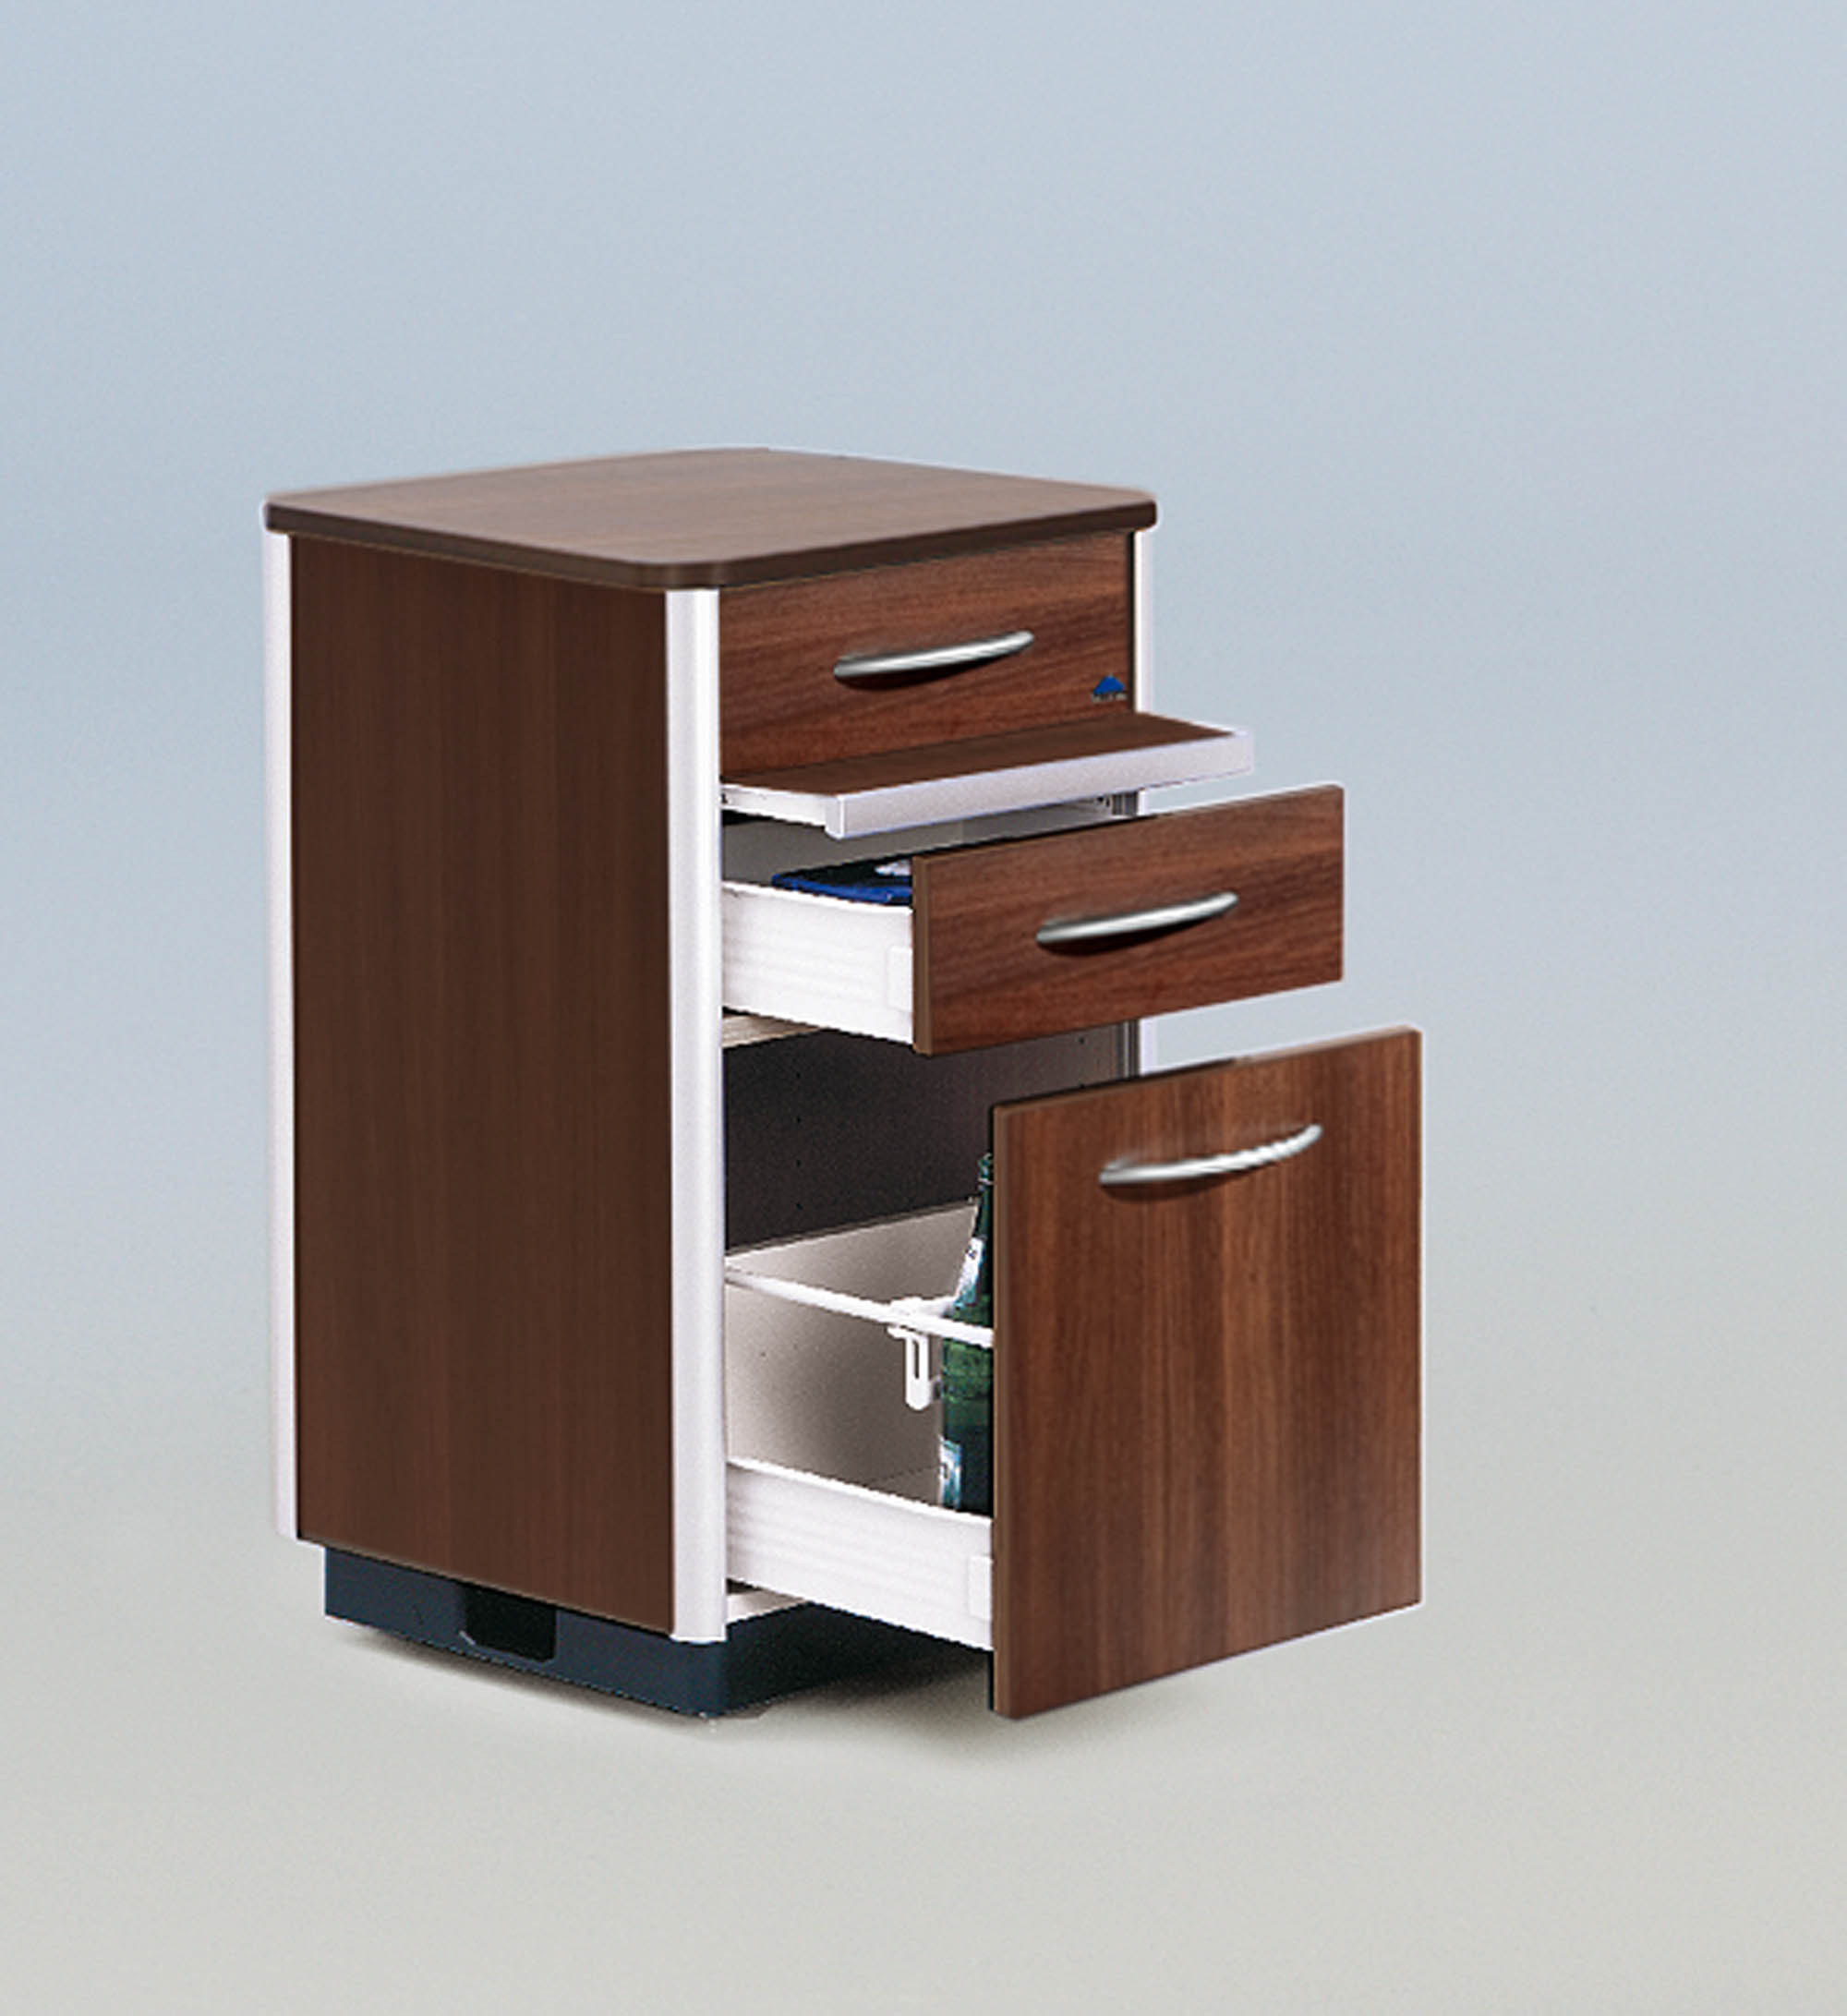 Flexible storage space in the Combino bedside cabinet